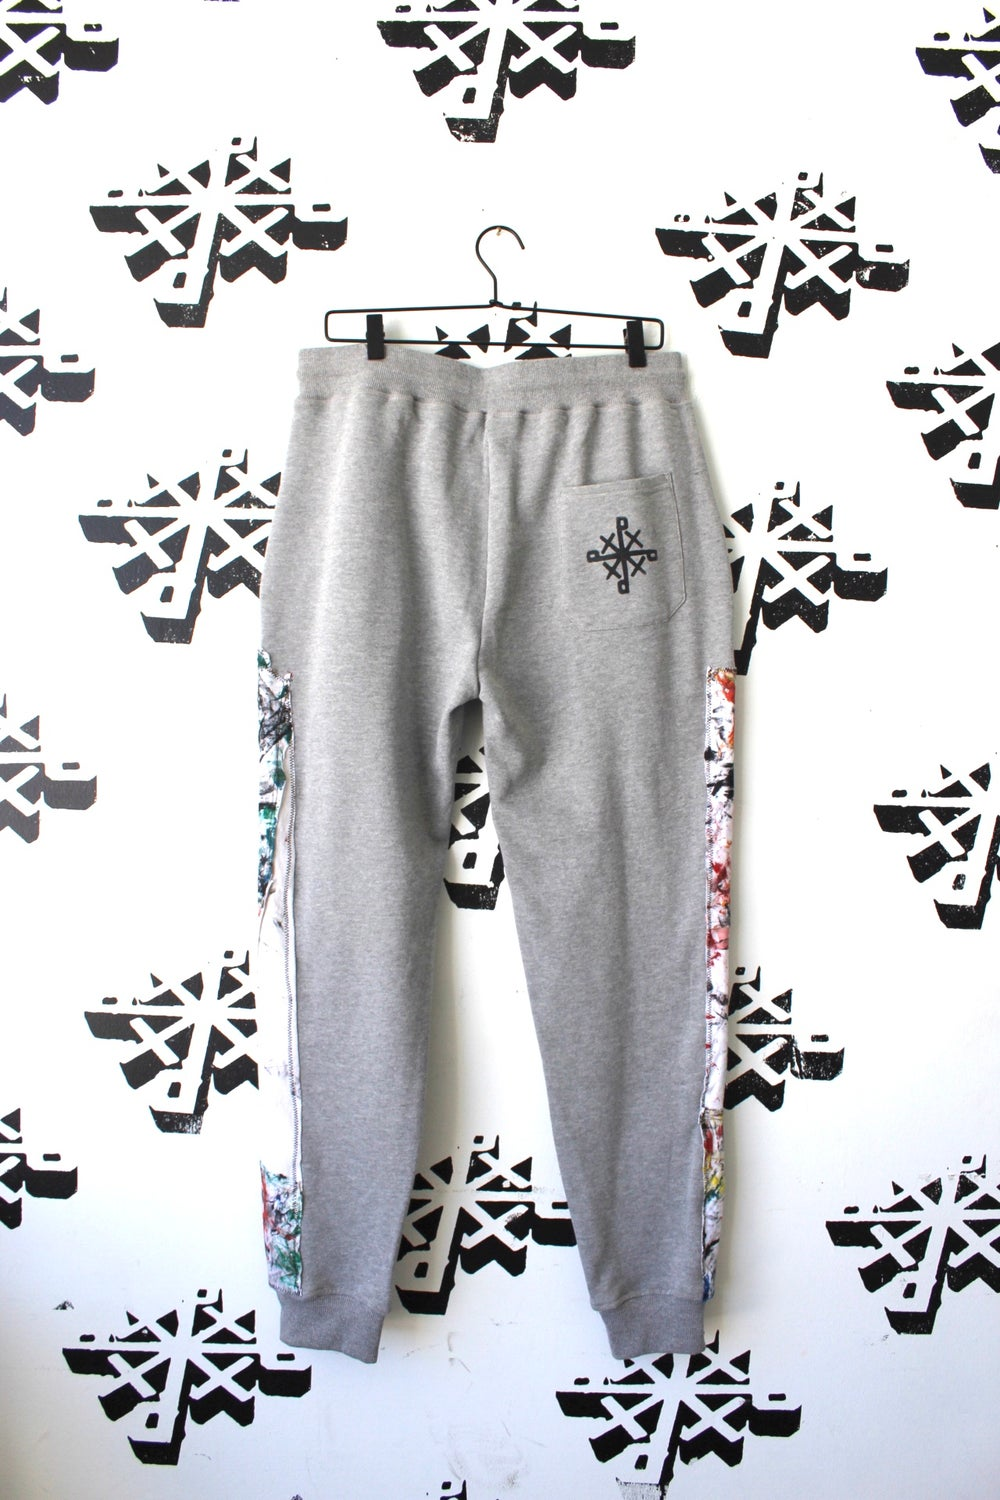 clean up nice sweatpants in gray